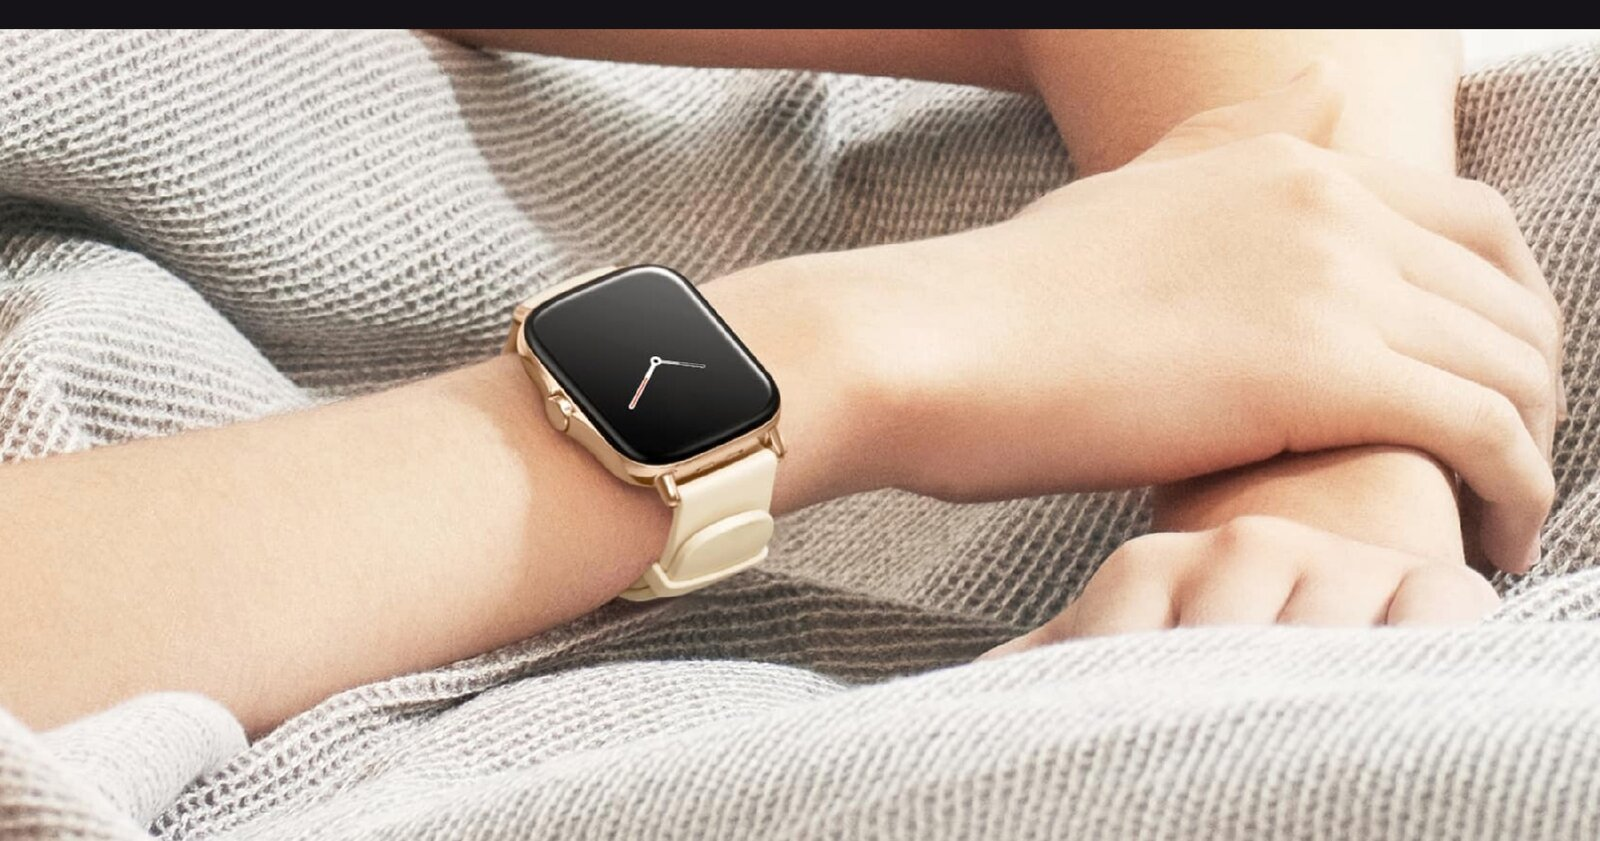 The Amazfit GTS 2 in gold color